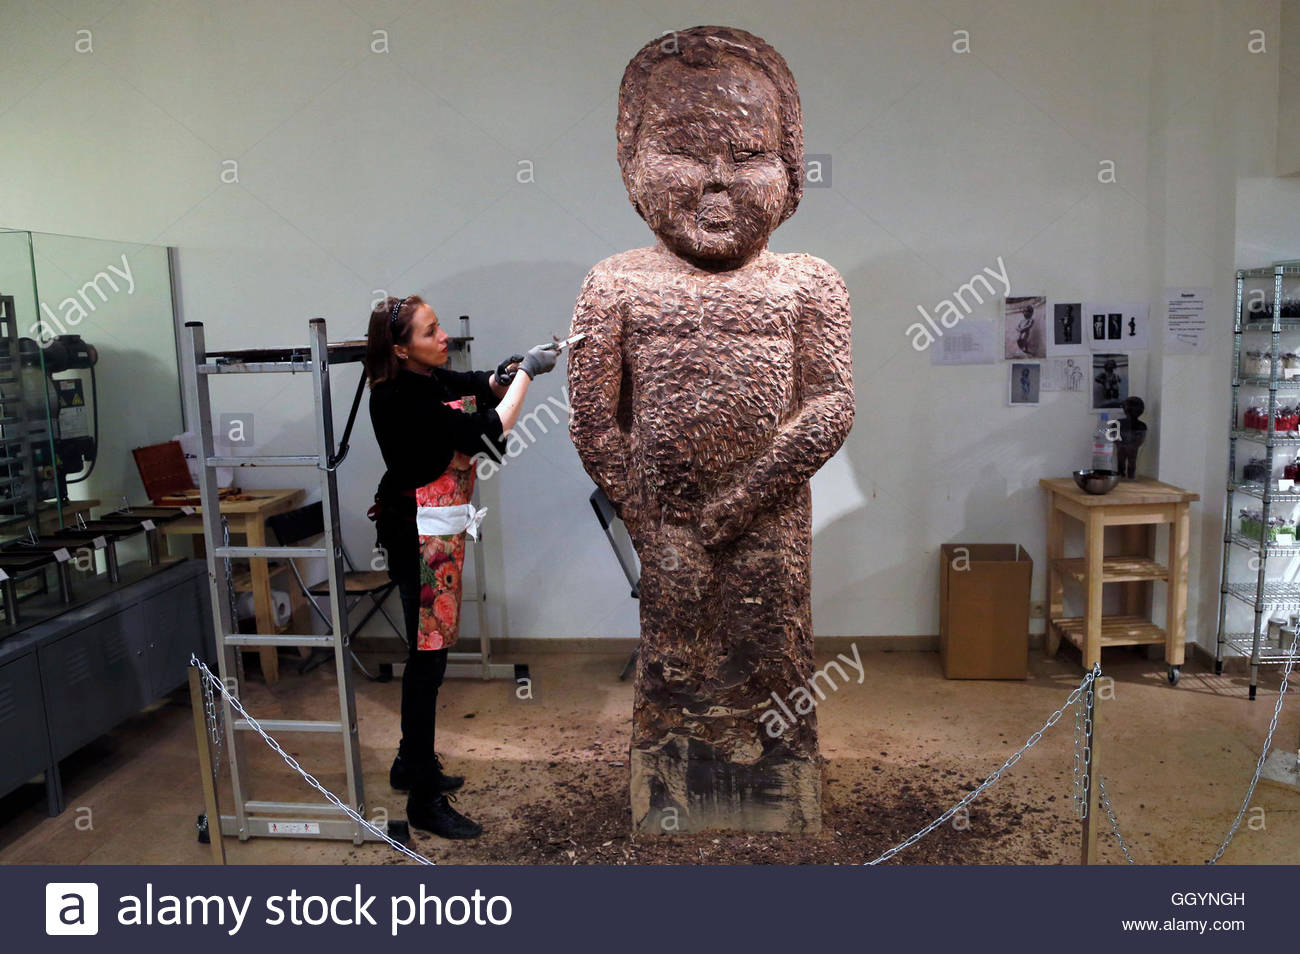 Sculptor Stephanie Dewitte Of France Carves A Chocolate Model Of ...